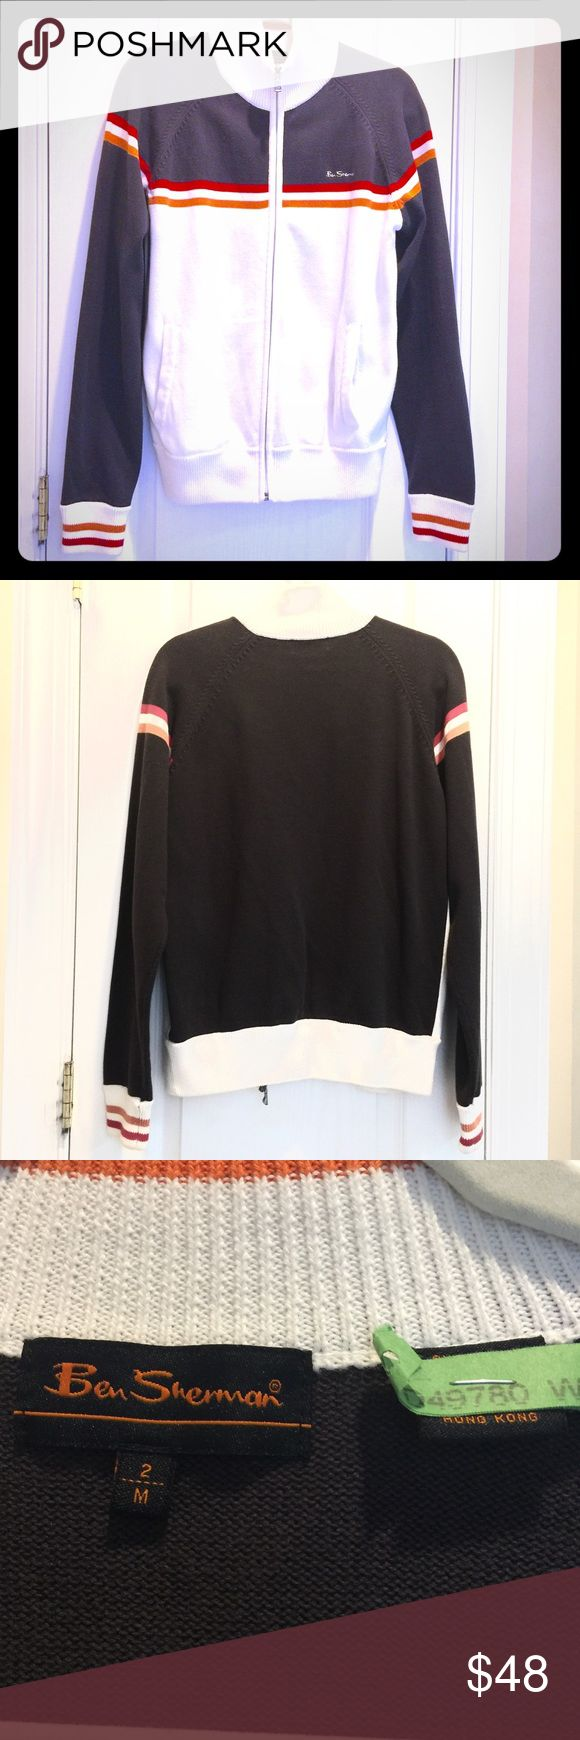 Ben Sherman zip up varsity style sweater EUC JUST GOT DRY CLEANED! No signs of wear Ben Sherman Sweaters Zip Up